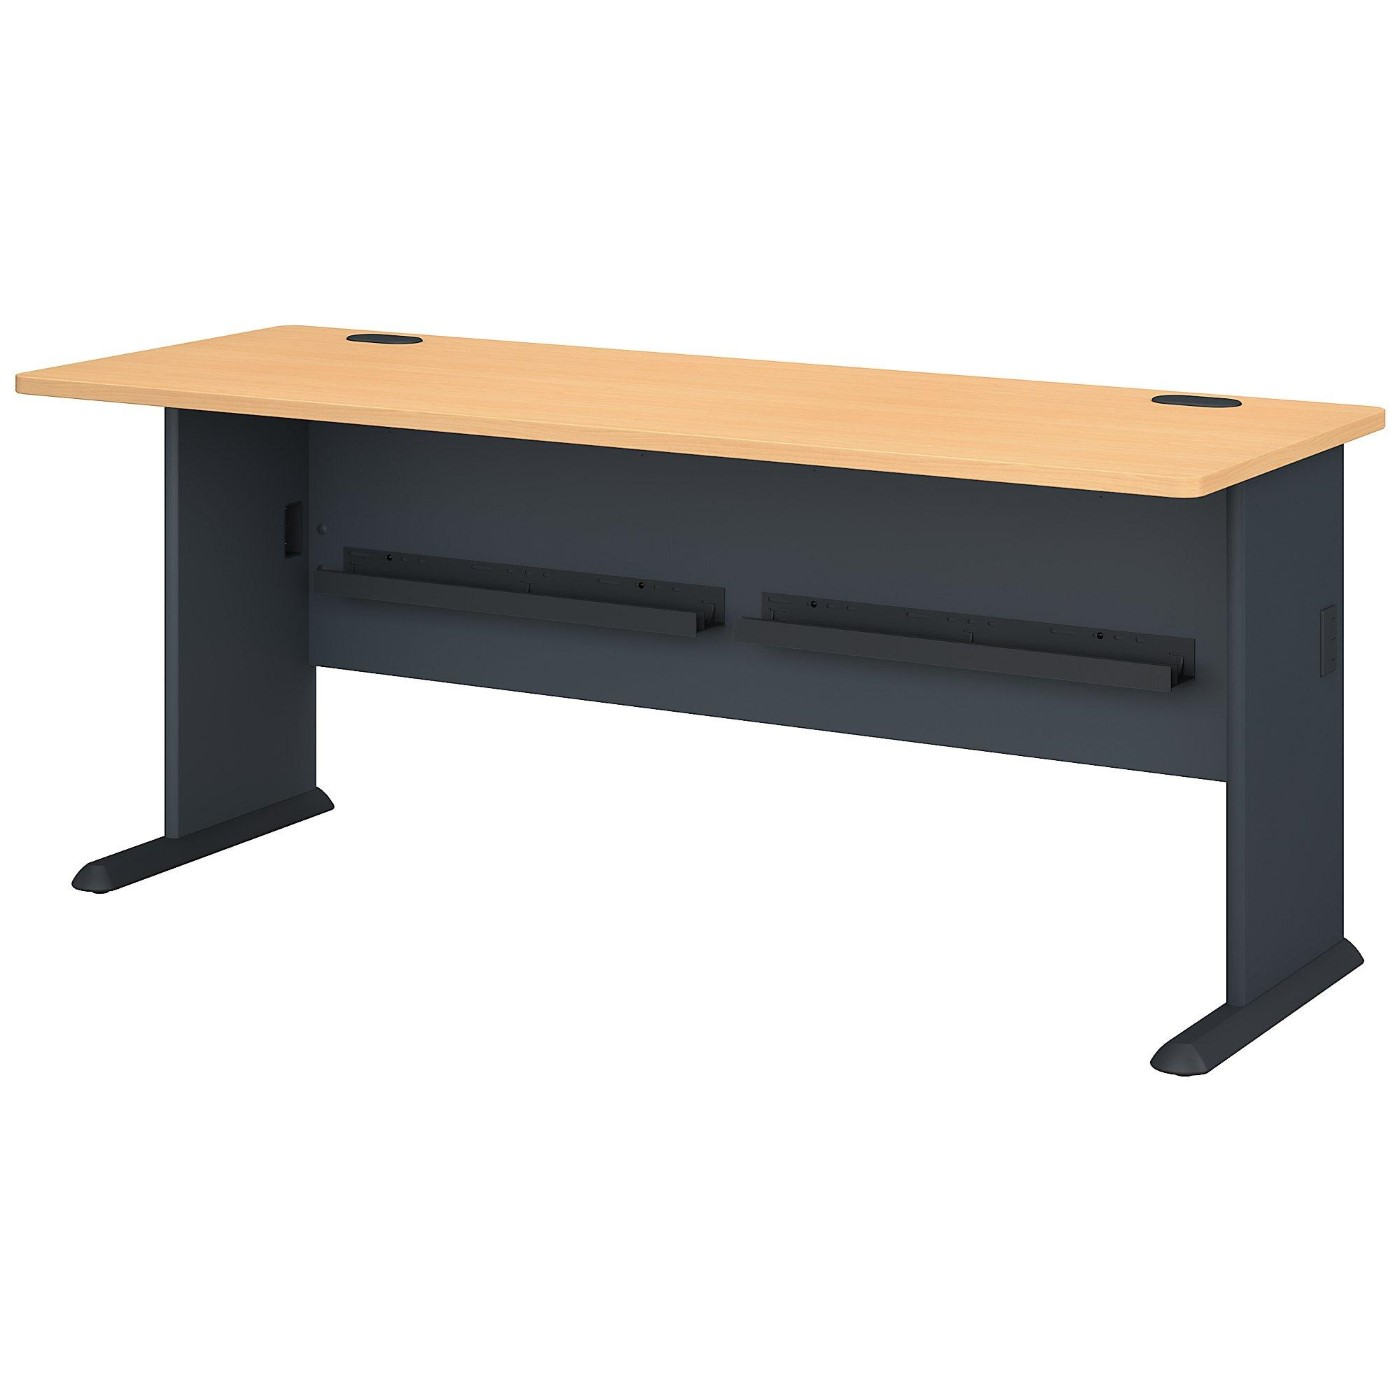 BUSH BUSINESS FURNITURE SERIES A 72W DESK. FREE SHIPPING  VIDEO BELOW.